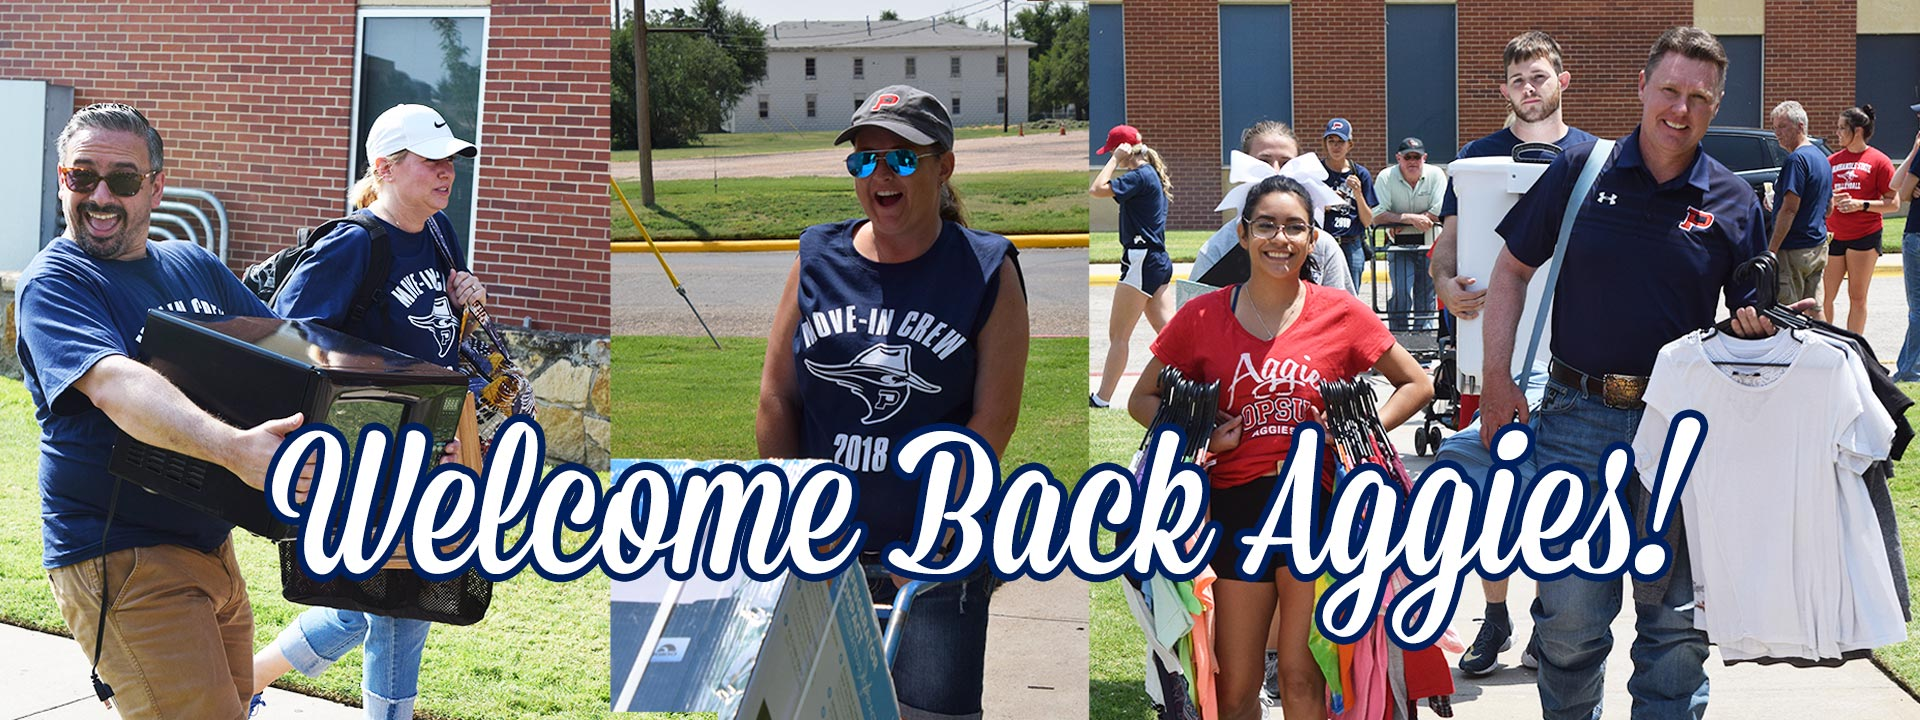 Staff moving students in - Welcome Back Aggies!